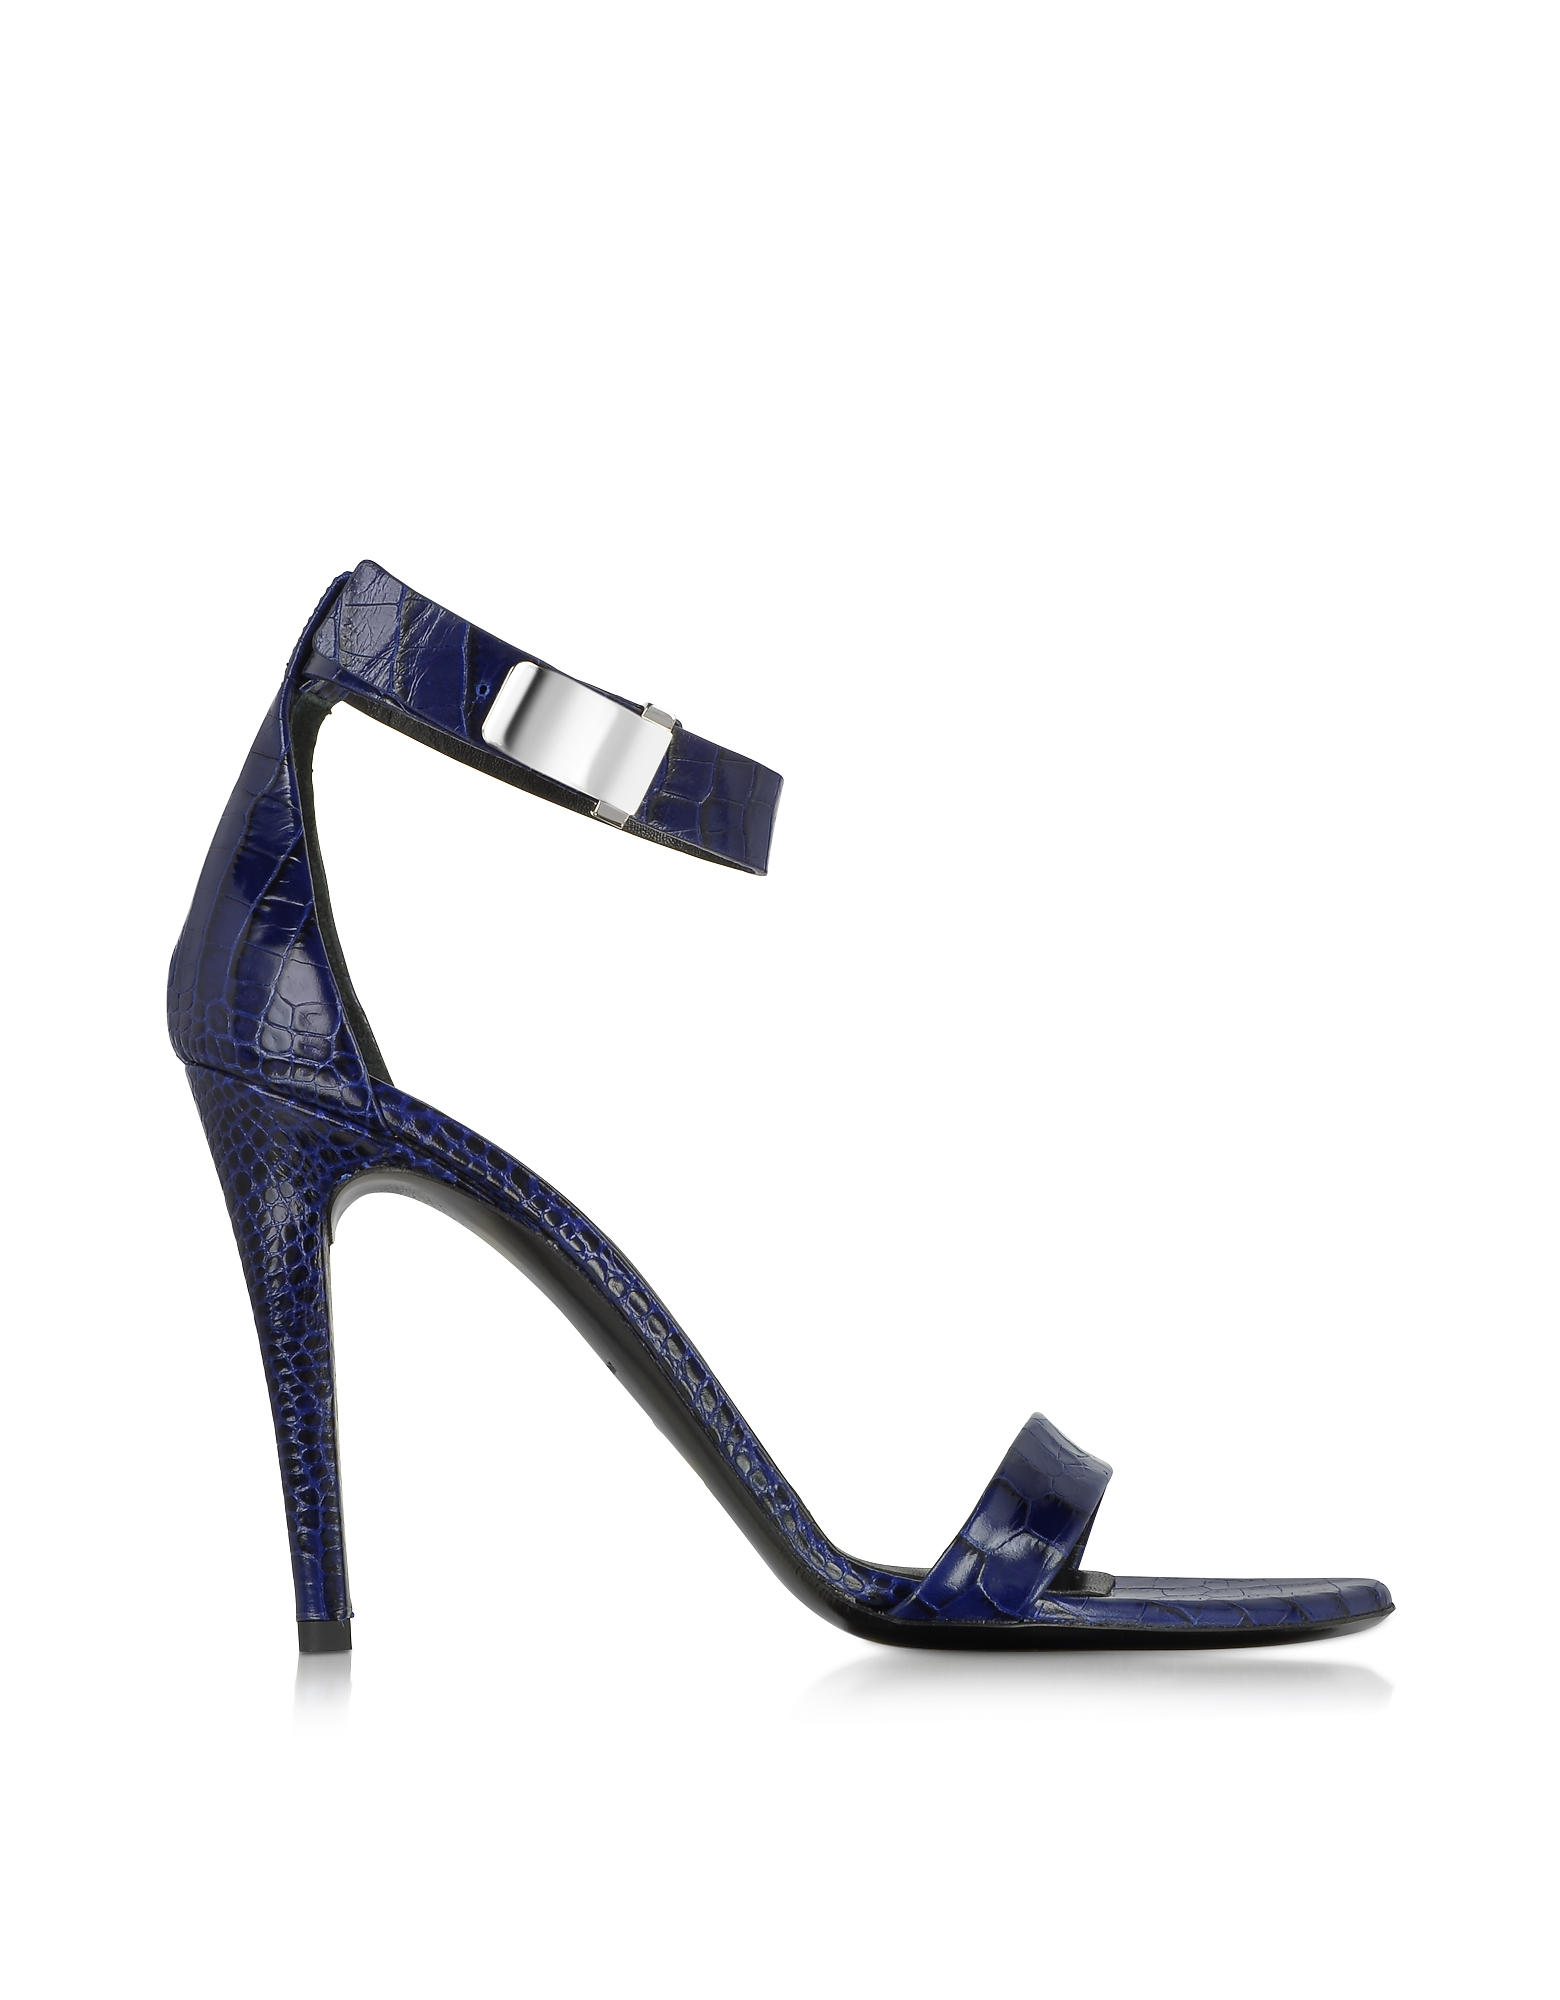 Proenza Schouler Shoes, Night Blue Printed Leather Sandal